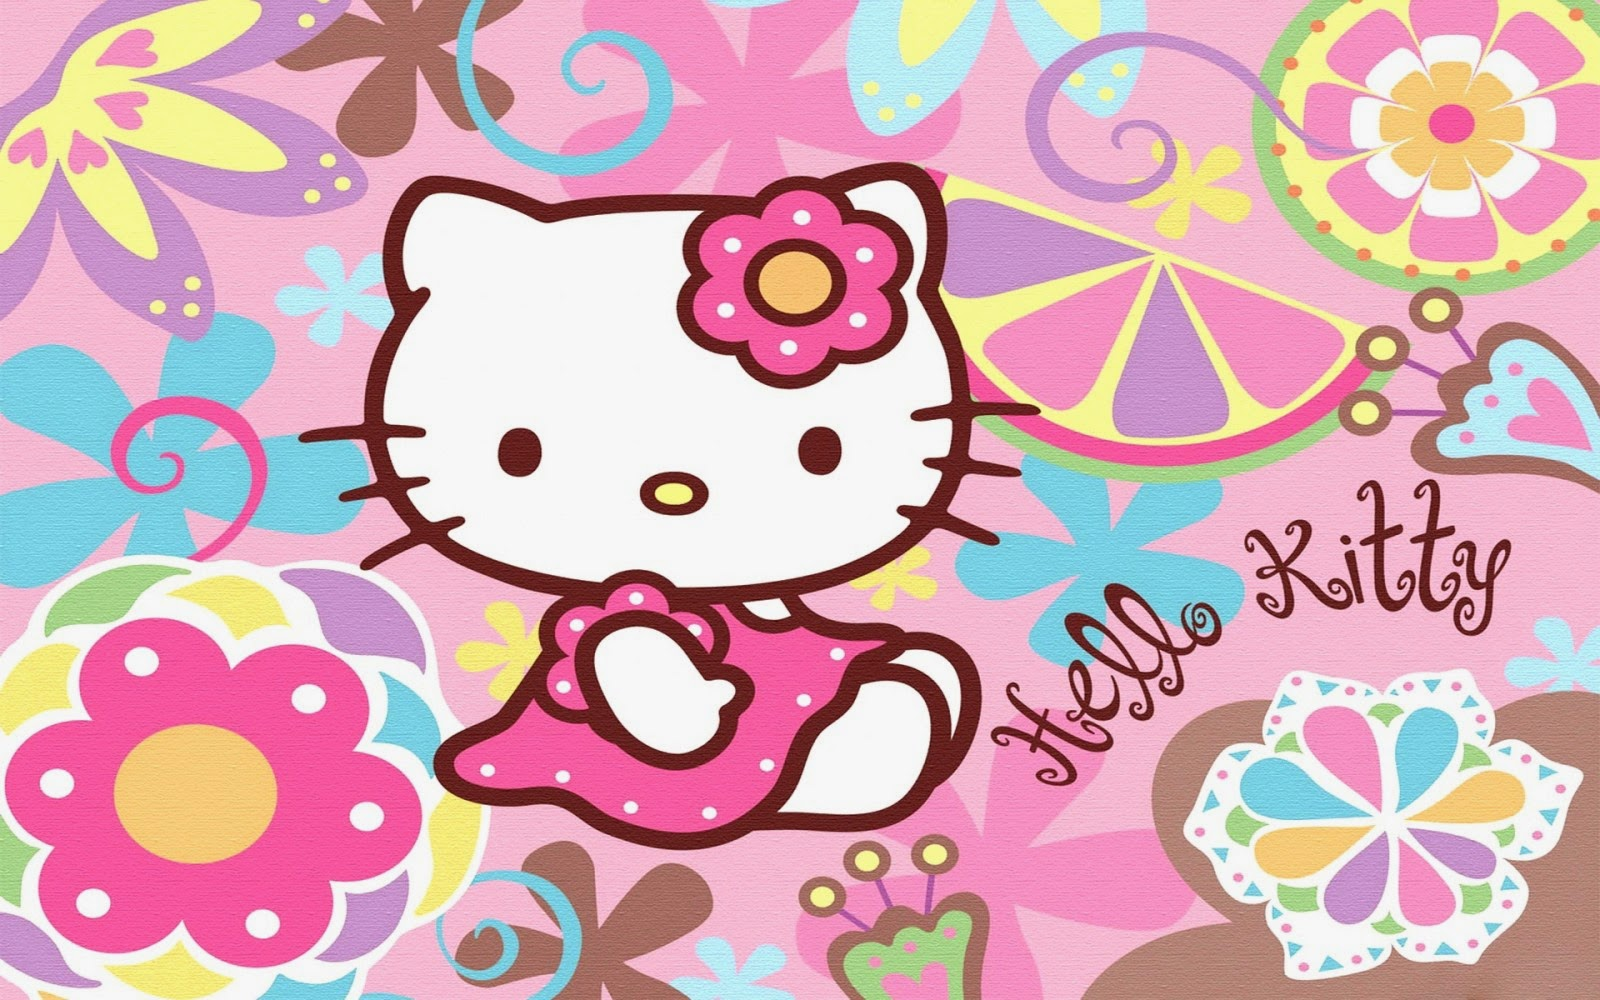 Free GAMBAR WALLPAPER HELLO KITTY Gambar Lucu Hello